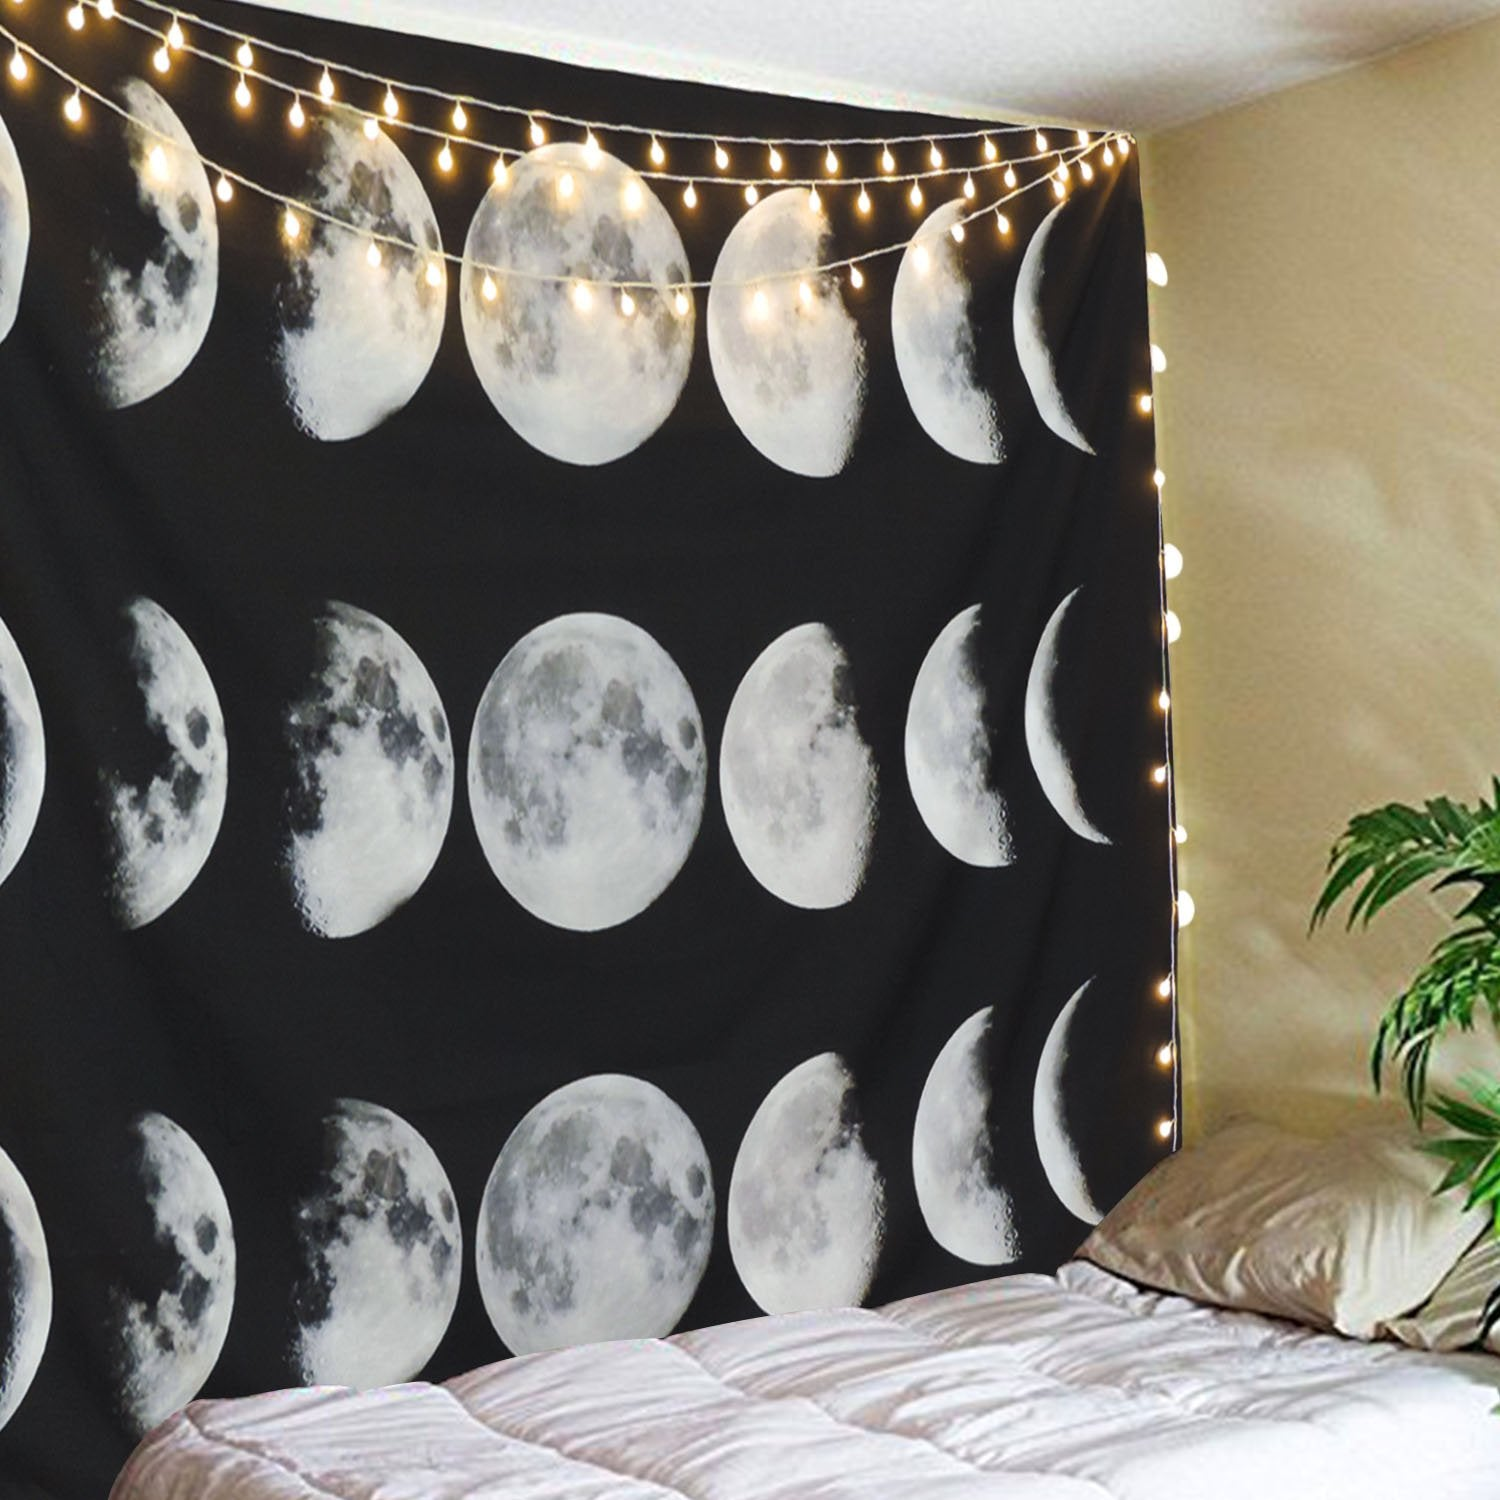 "Moon Phase Tapestry Wall Decor (Moon Phase Change, 59.1"" x 82.7"")"